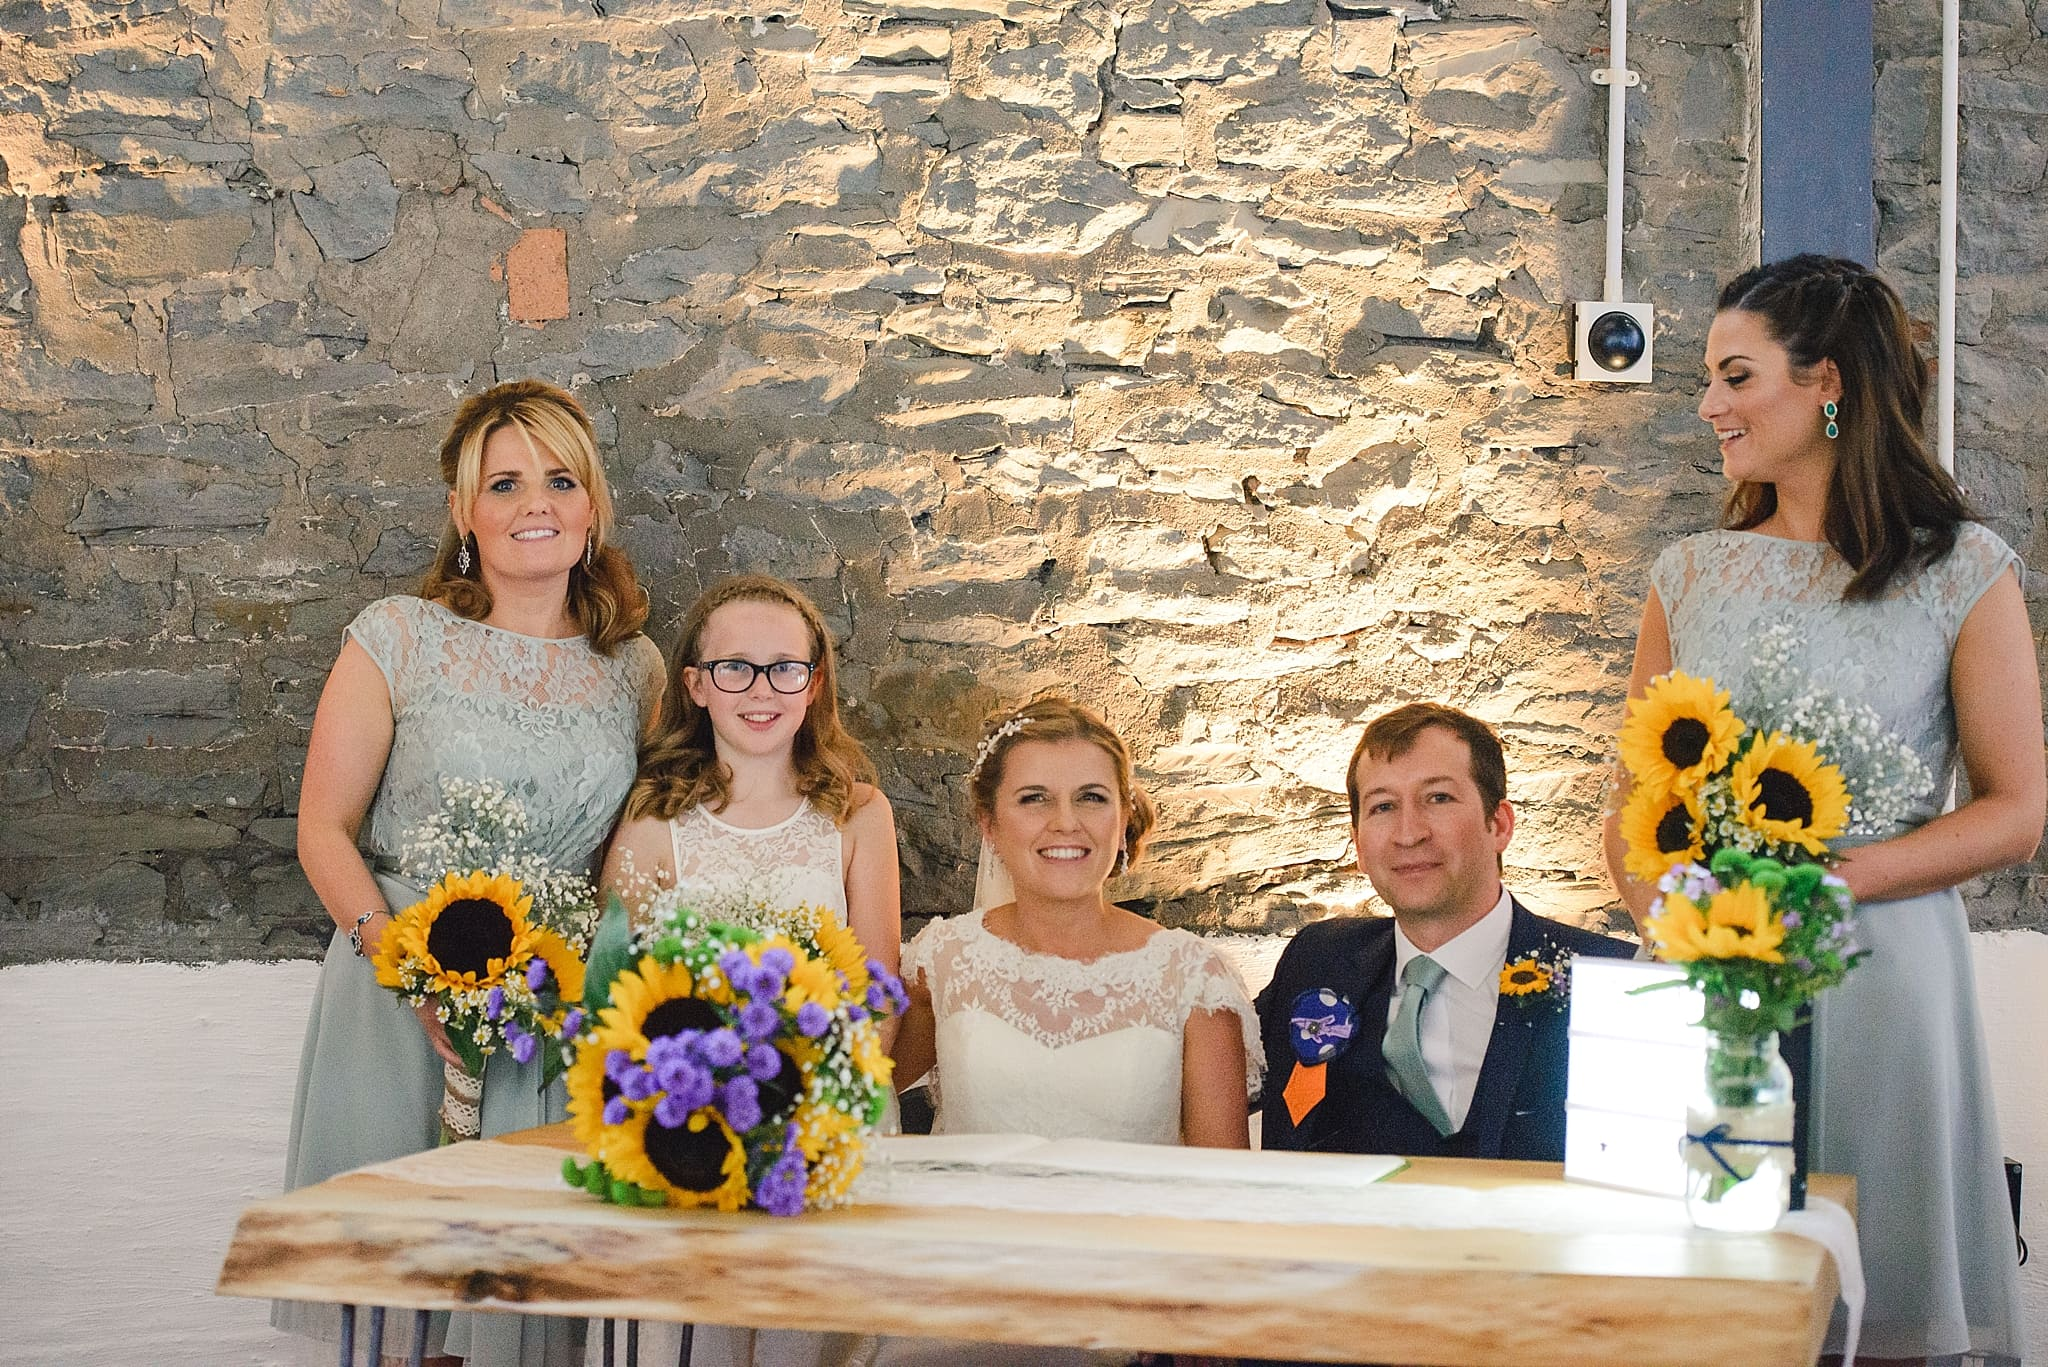 witnesses to signing of the register at the Paintwork's wedding